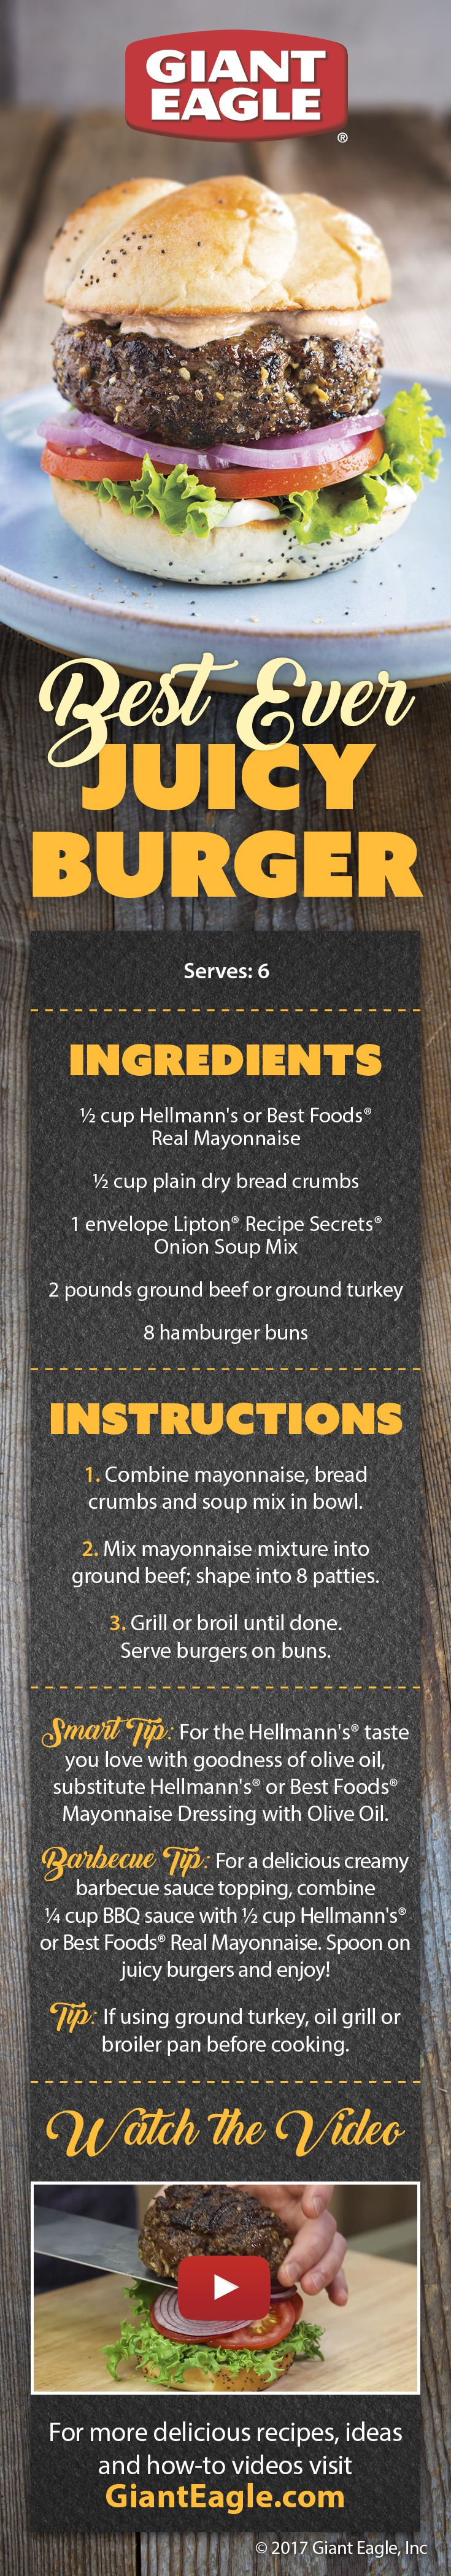 This is the Best Ever Juicy Burger recipe from Hellmann's Mayonnaise! Serve this to your guests for the 4th and there will be fireworks in their mouths!